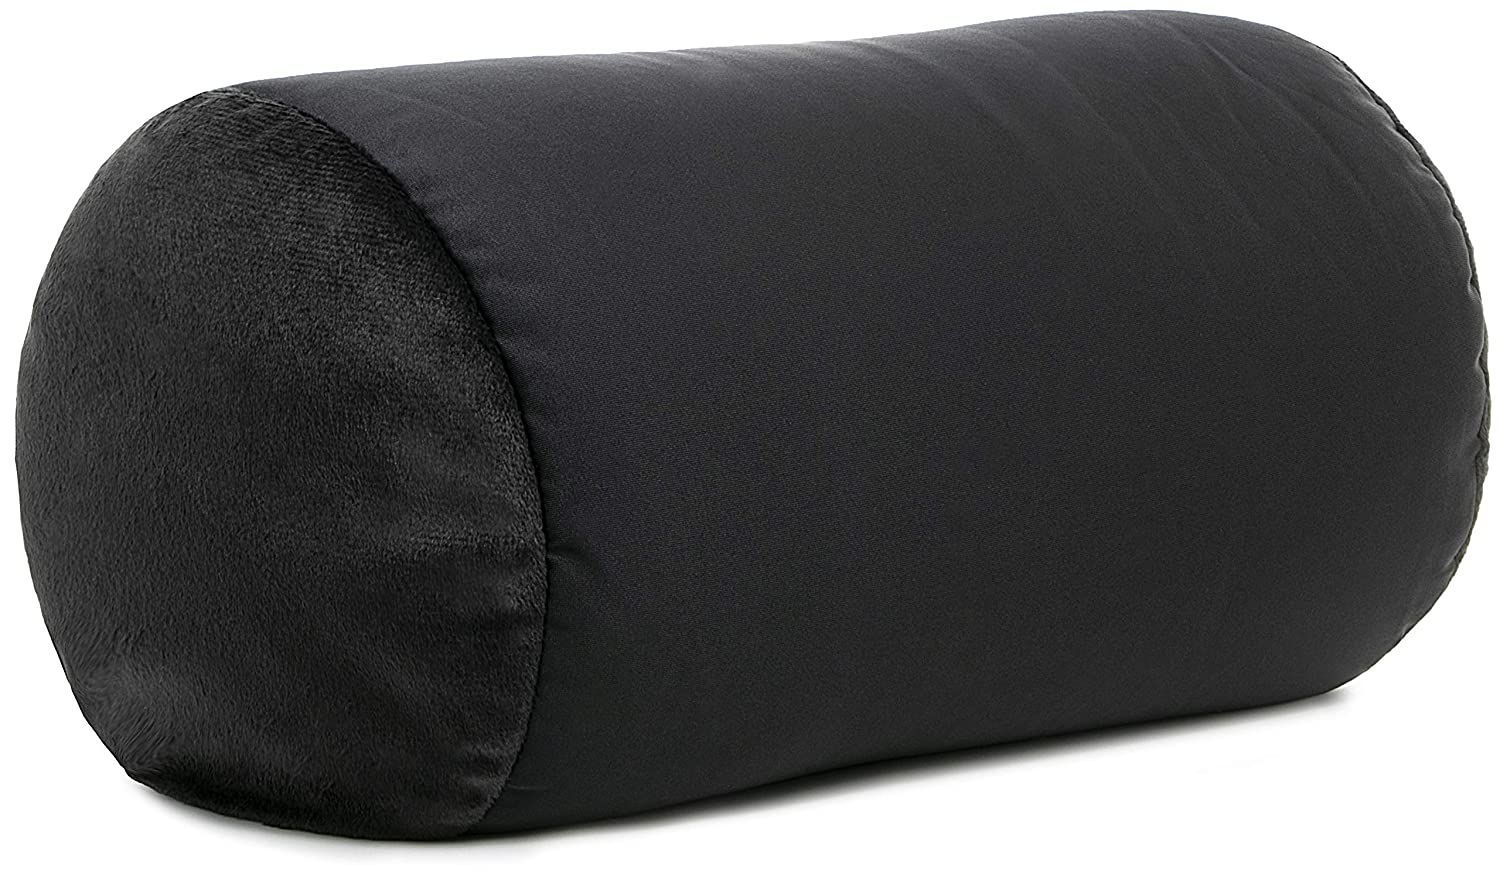 Mooshi Squish Microbead Jelly Bean Bed Pillow